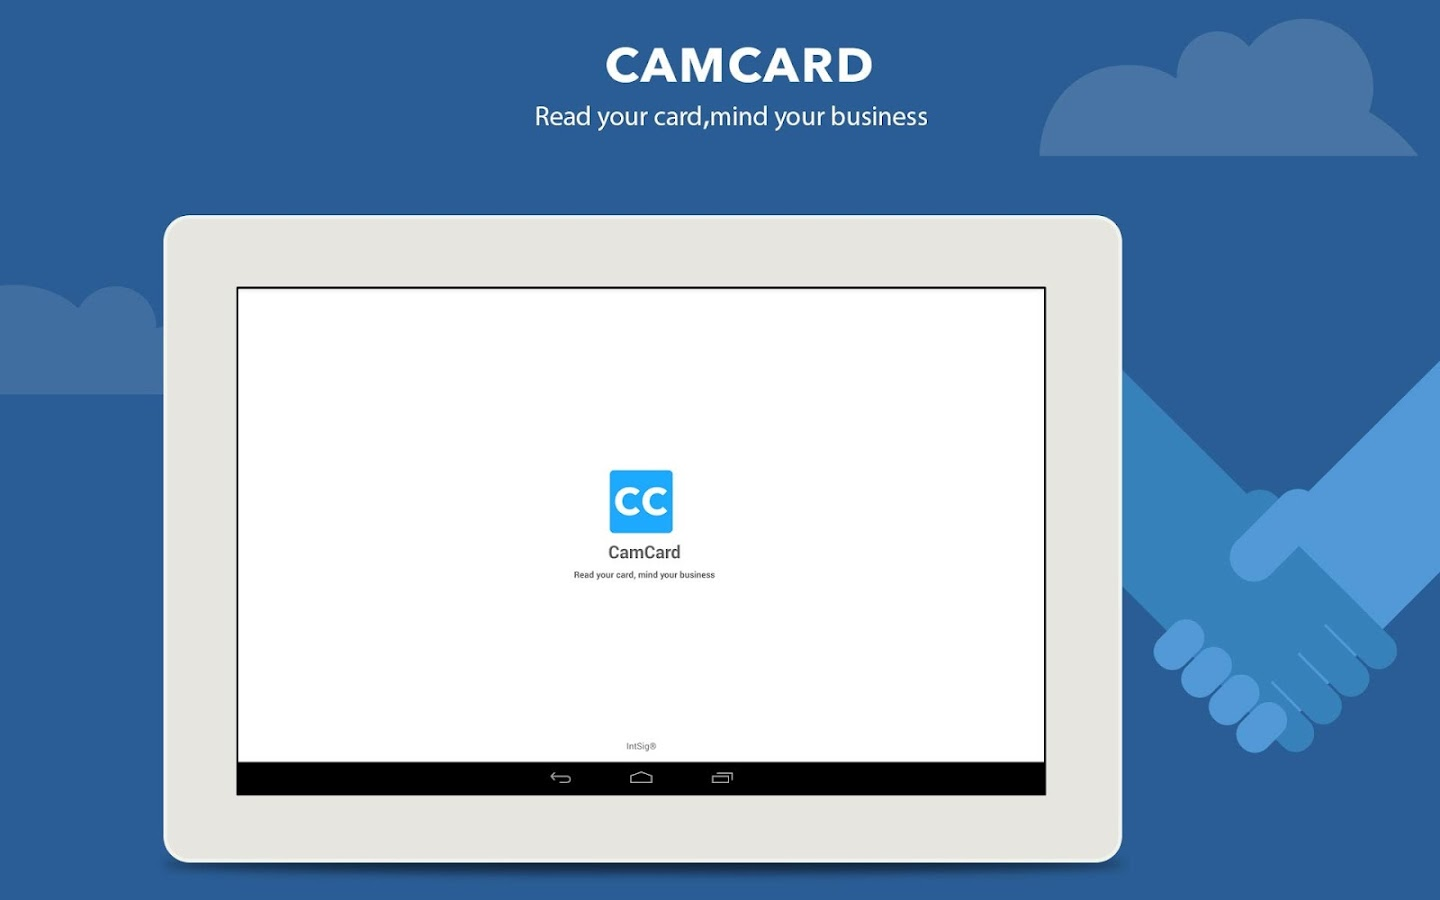 Camcard business card reader android apps on google play camcard business card reader screenshot magicingreecefo Choice Image